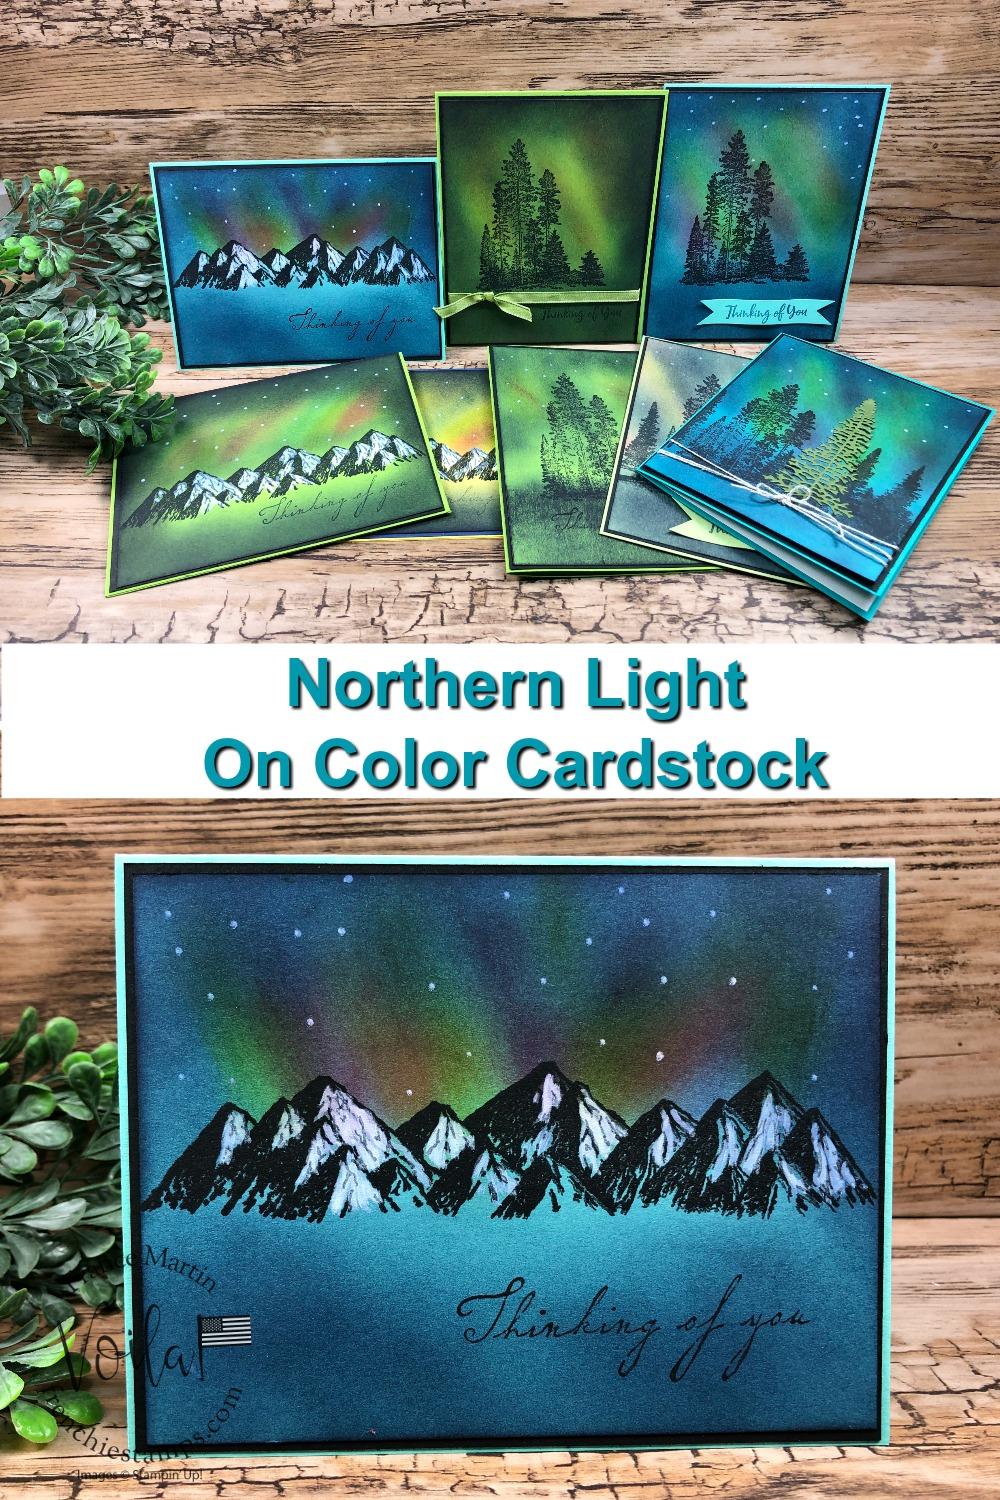 Northern Light On Color Cardstock, Stamp Set Campology And Mountain Air